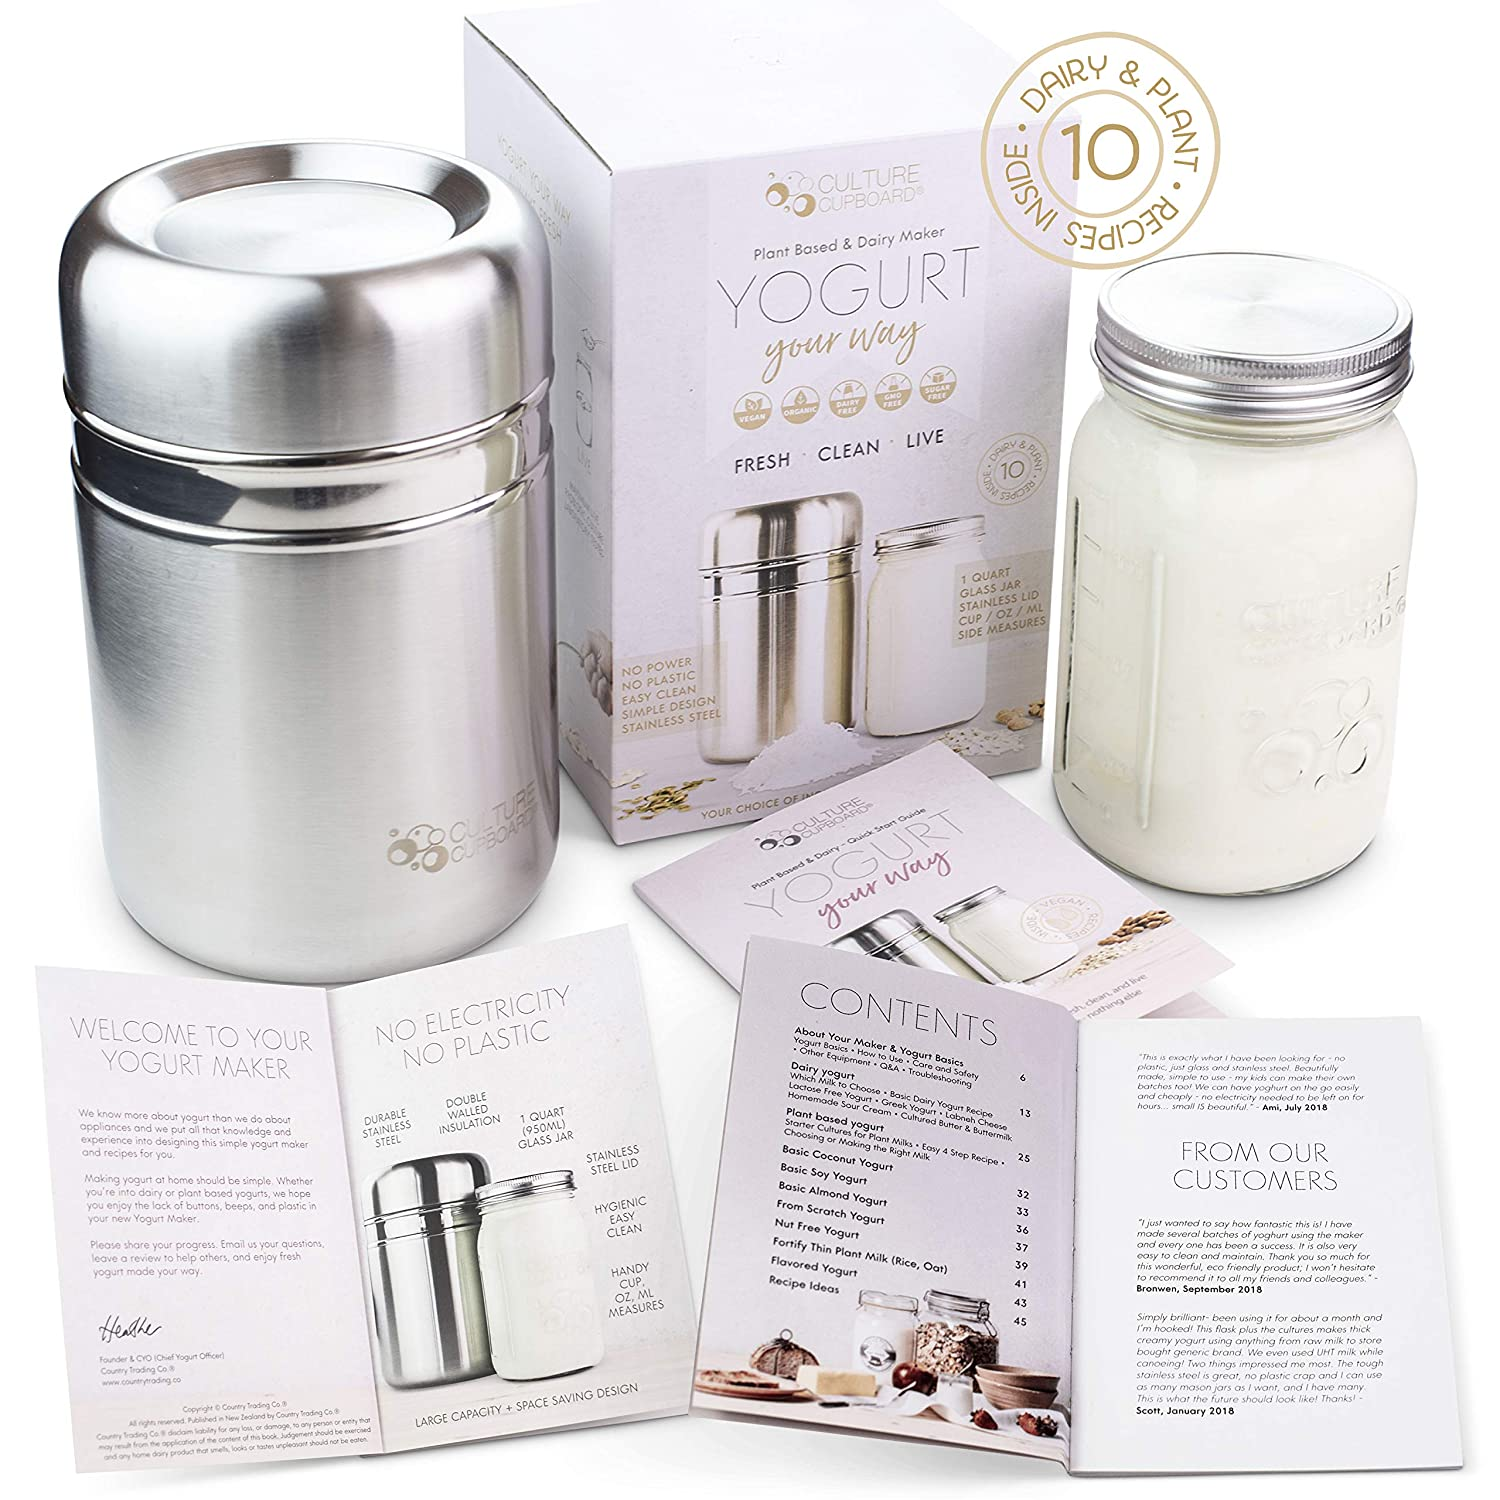 Stainless Steel Yogurt Maker with 1 Quart Glass Jar